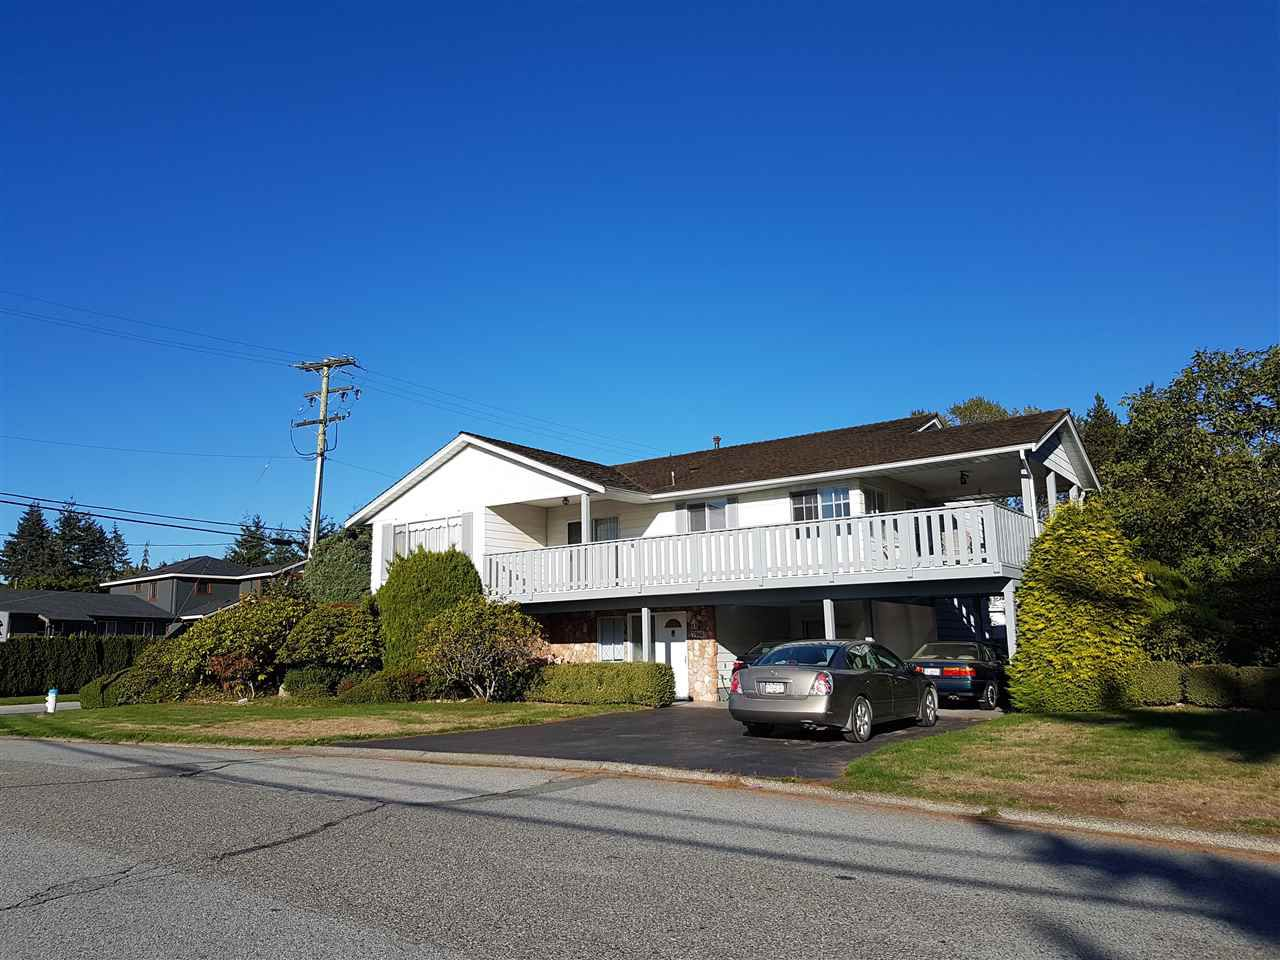 """Main Photo: 7966 WILTSHIRE Boulevard in Delta: Nordel House for sale in """"CANTERBURY HEIGHTS"""" (N. Delta)  : MLS®# R2212600"""